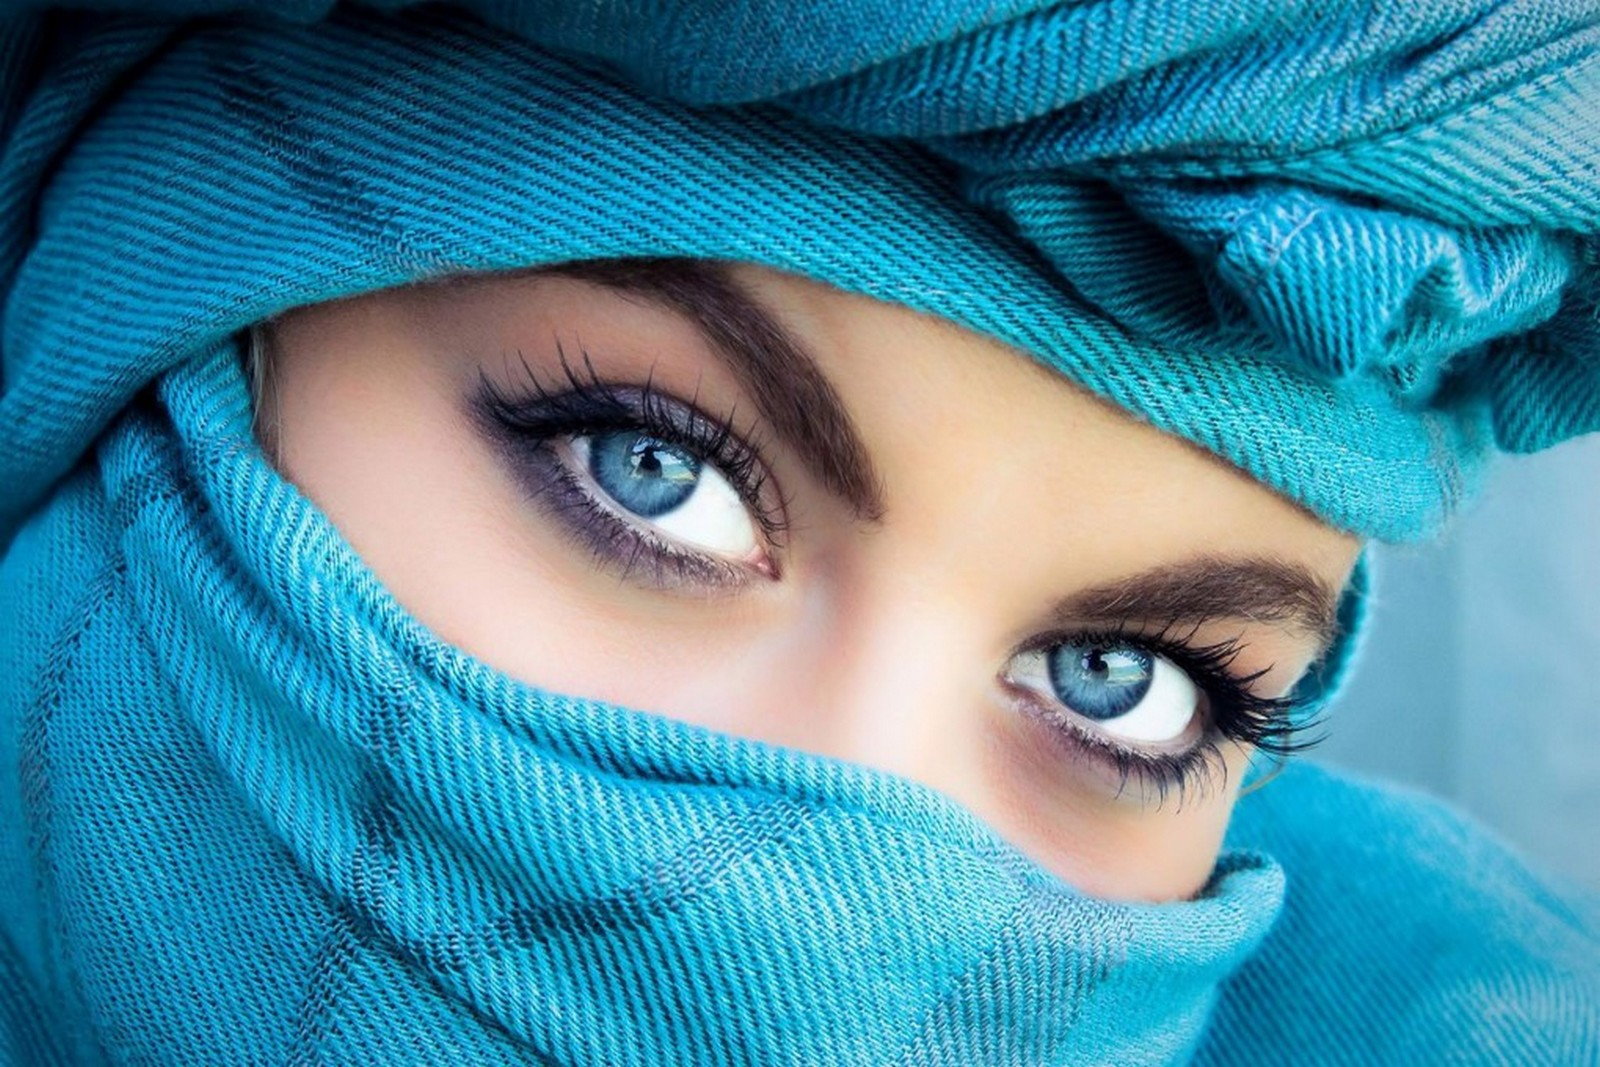 A Girl with Blue Eyes